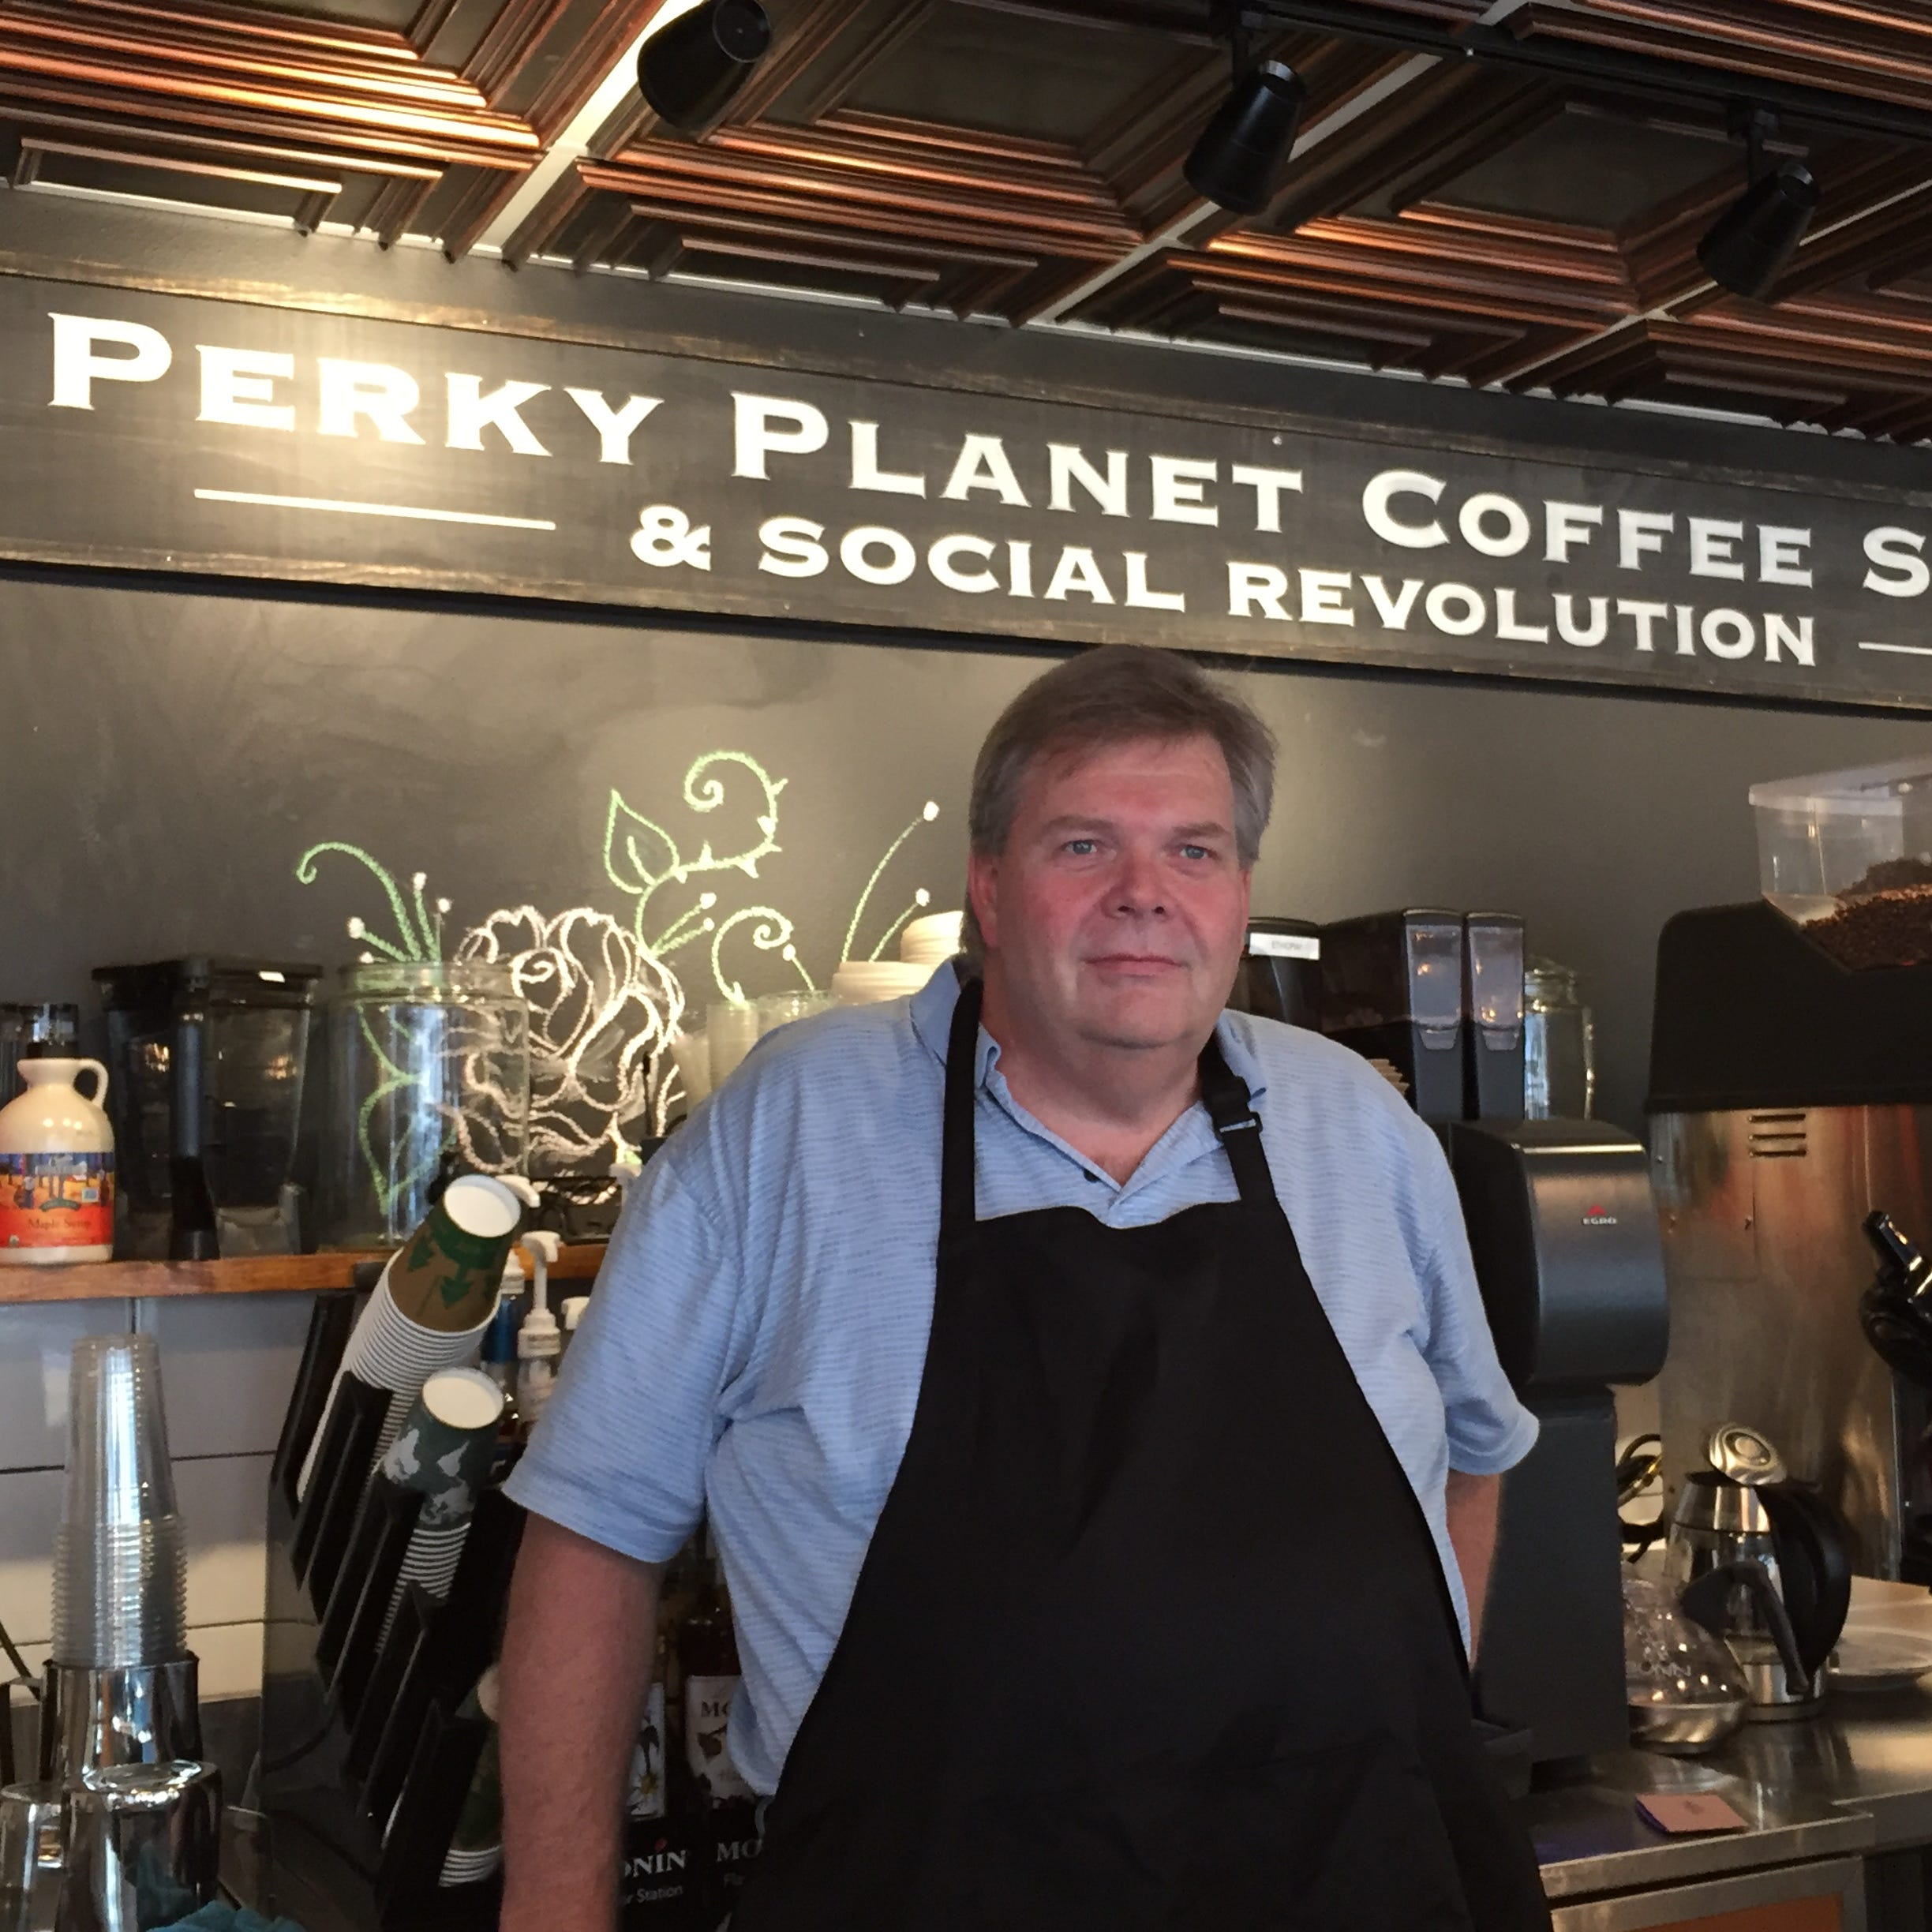 New coffee shop Perky Planet is now open in Burlington. It wants a 'social revolution.'